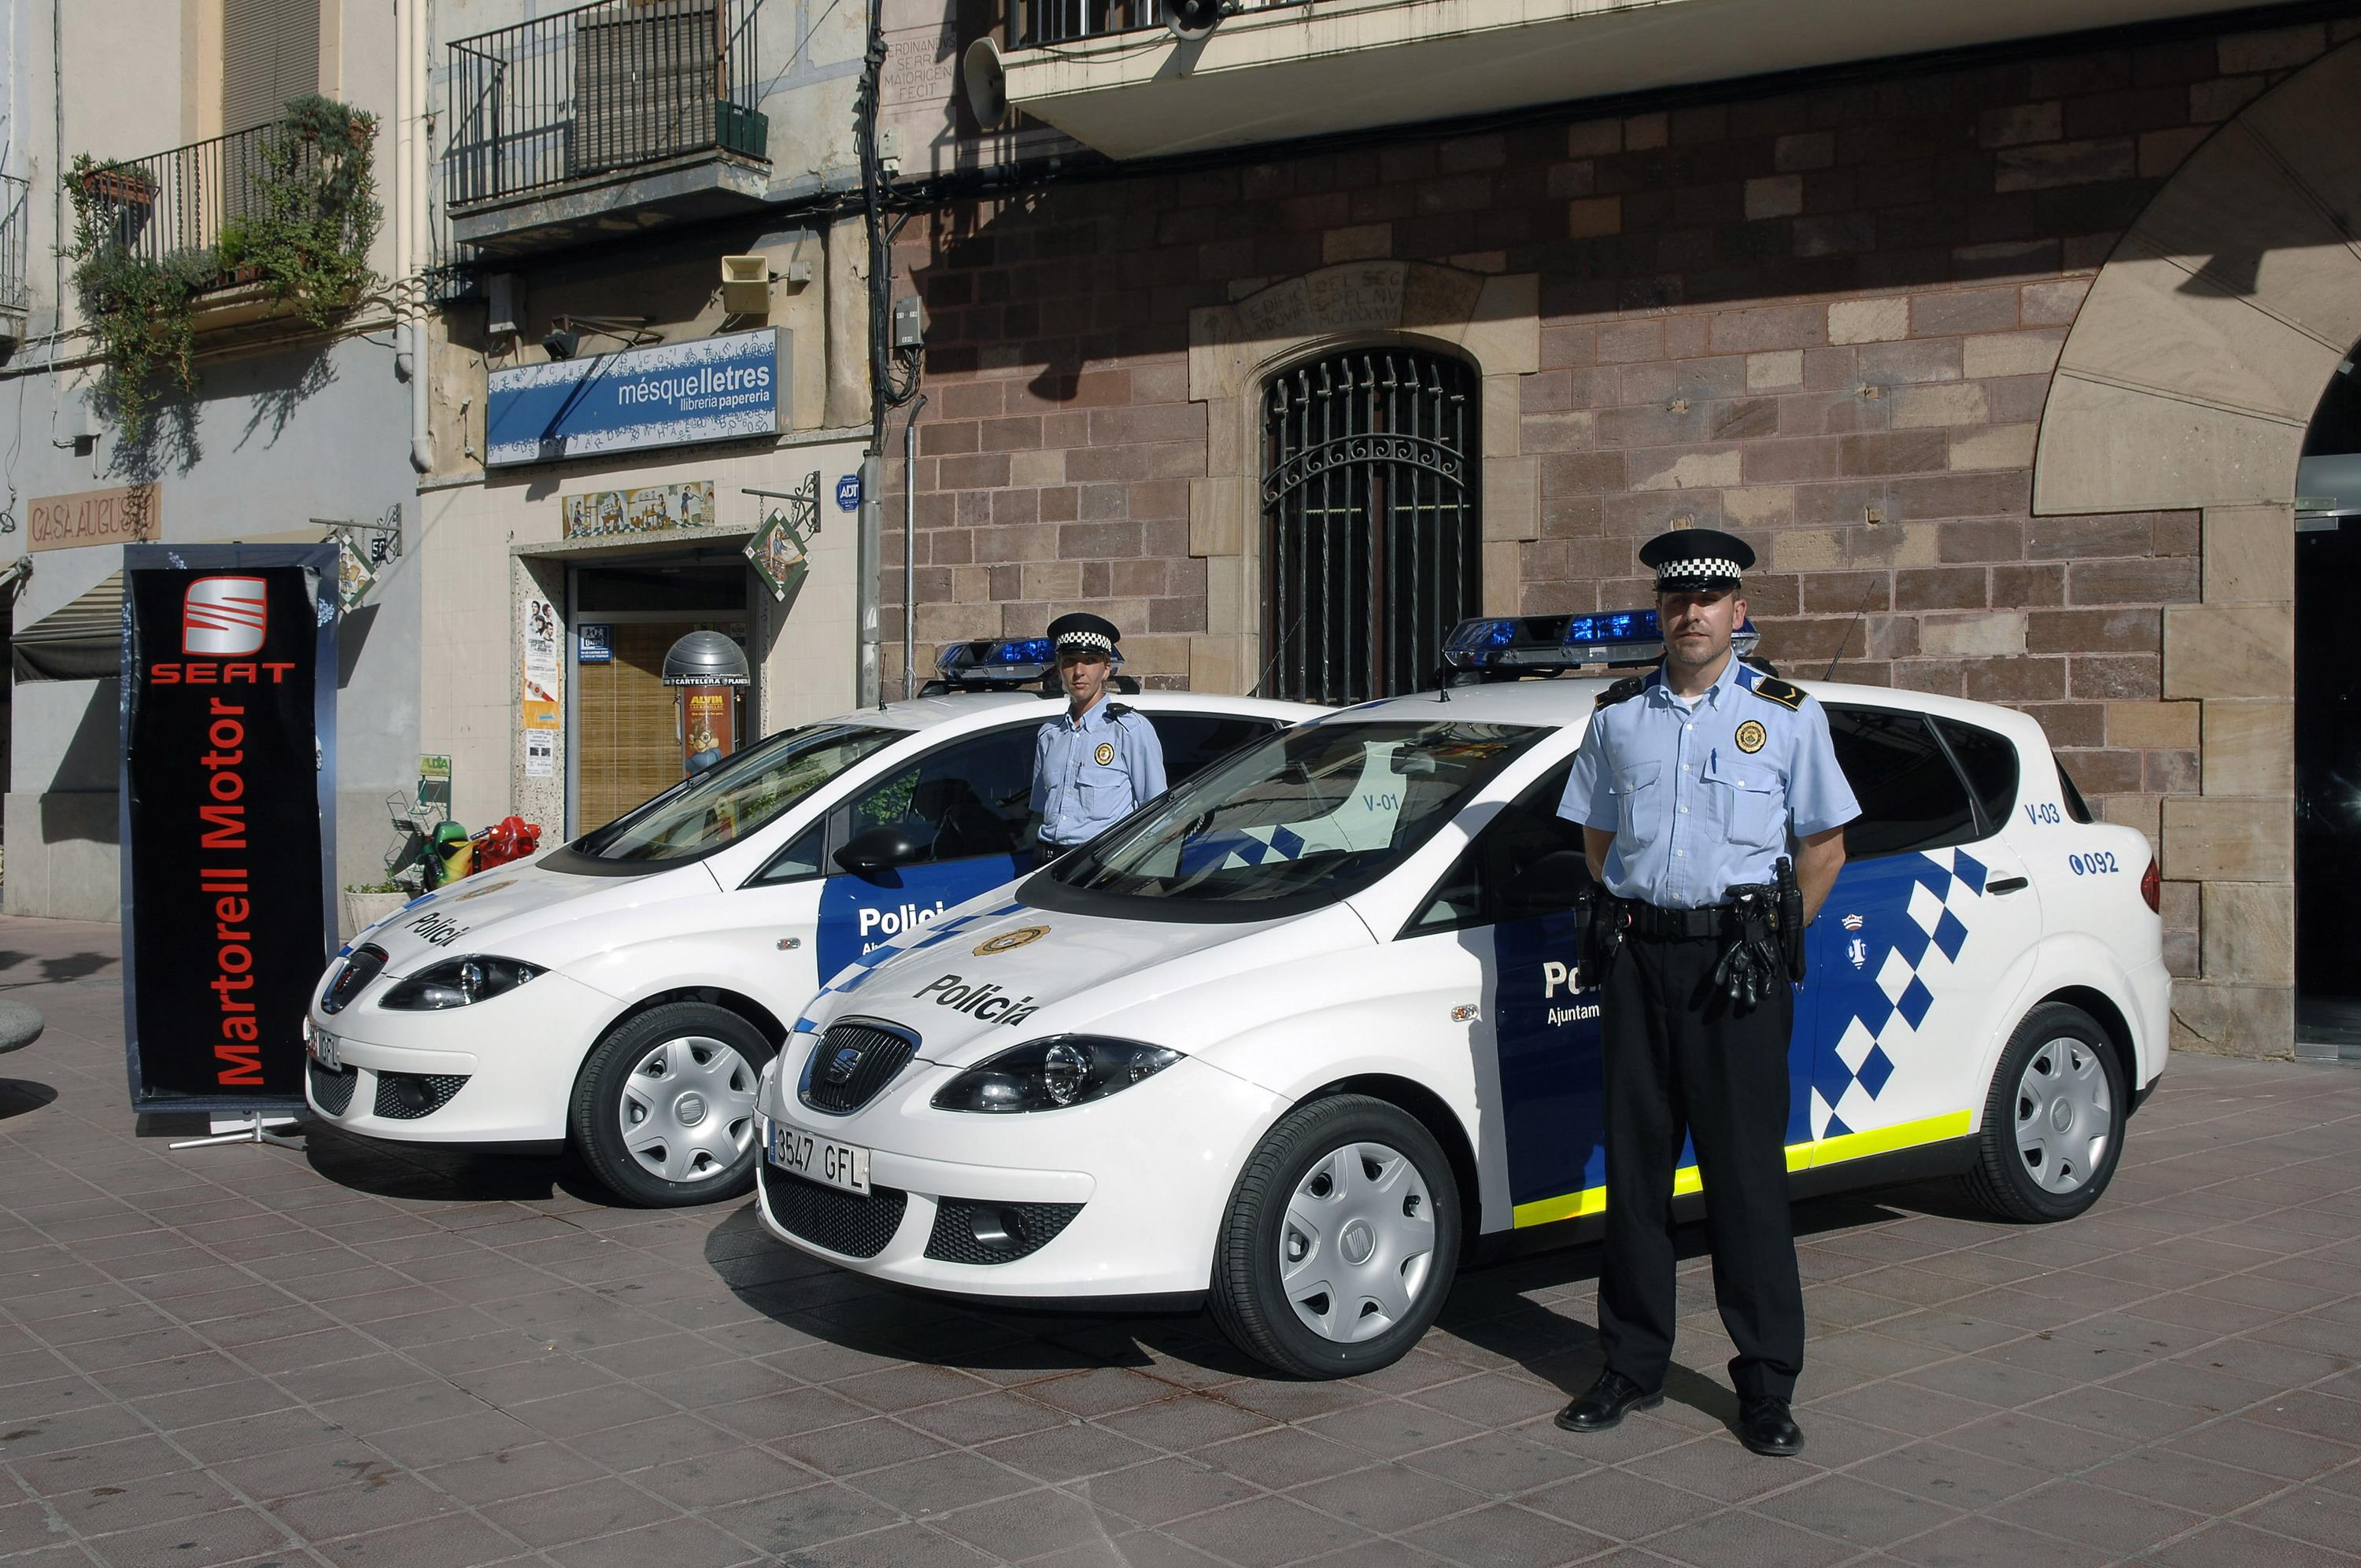 Local Used Cars >> 2008 Seat Toledo Police Car | Top Speed